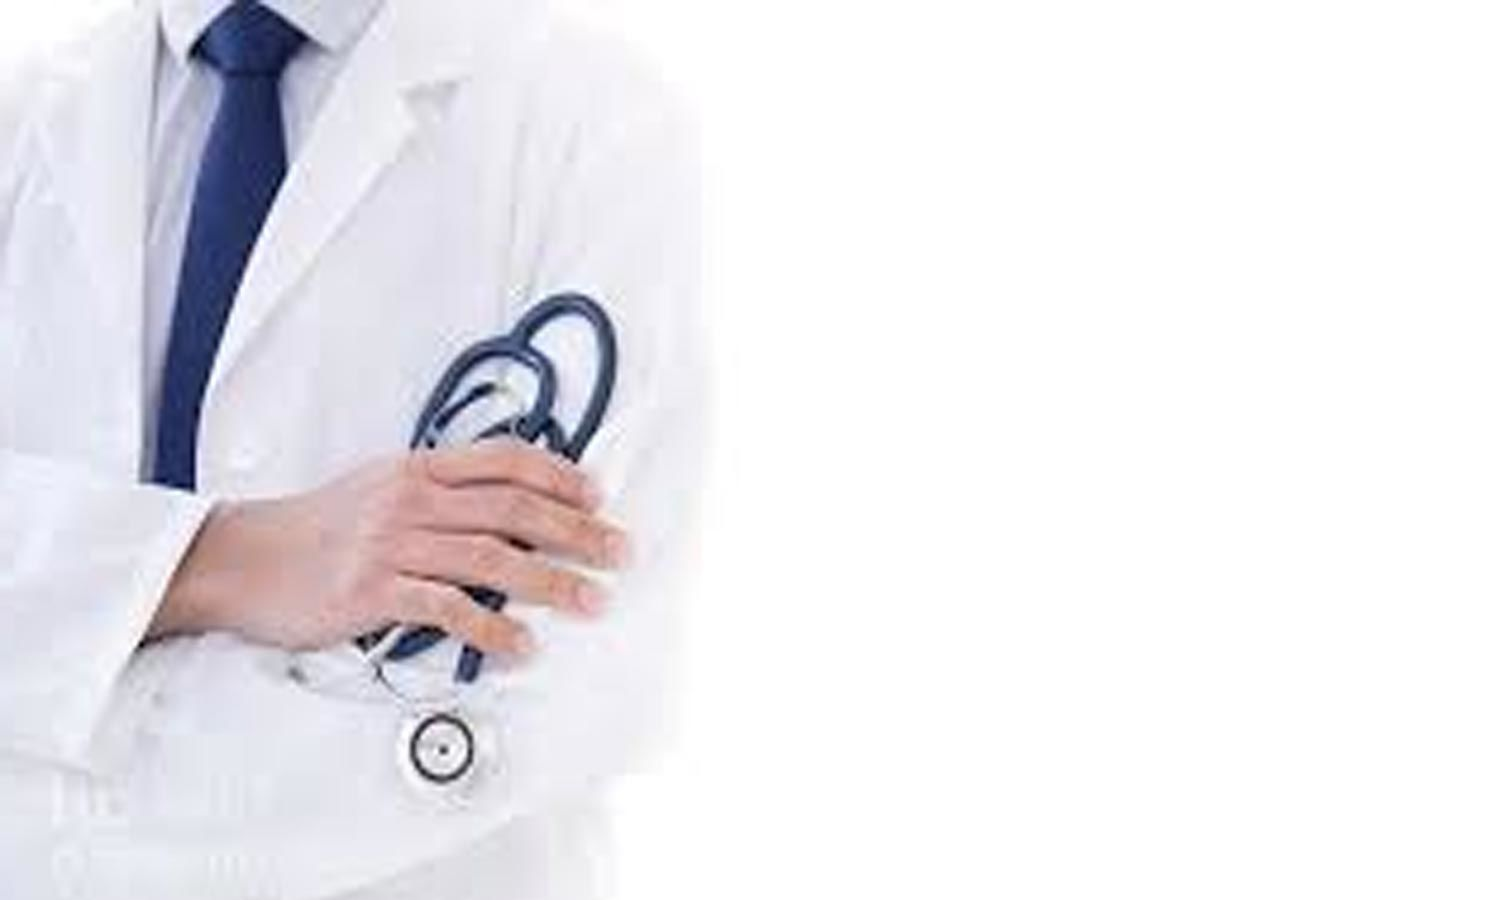 Mumbai: Criminal case against doctors if they prescribe Swab test without physical examination, says BMC